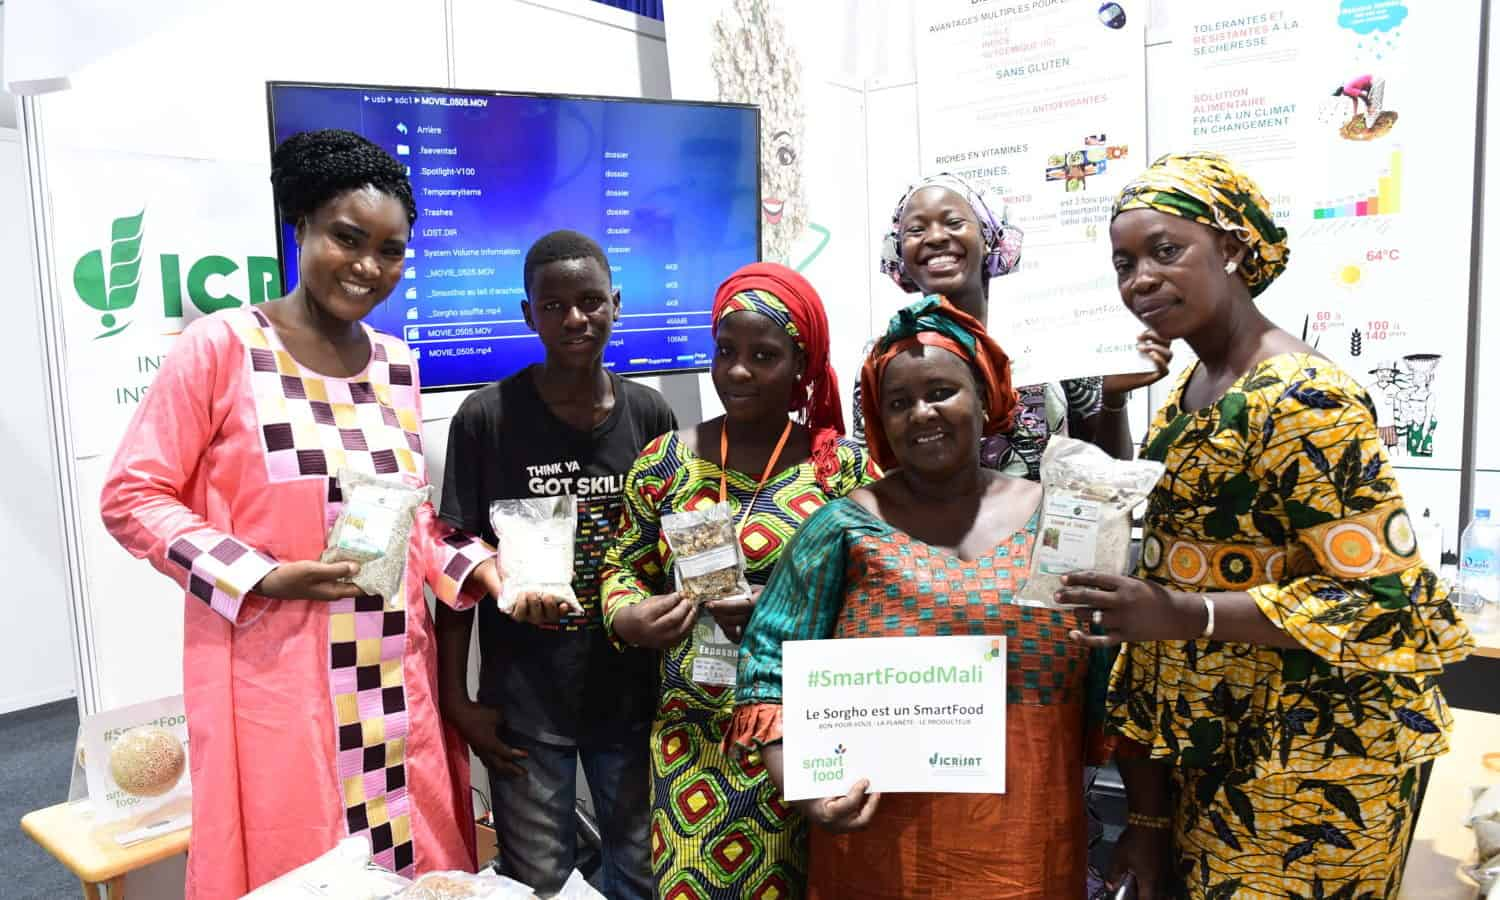 The Paris-based Senegalese chef, culinary blogger, Aissatou M'Baye, became a Smart Food Ambassador, using social media as a tool to expand awareness of healthy Smart Food recipes.